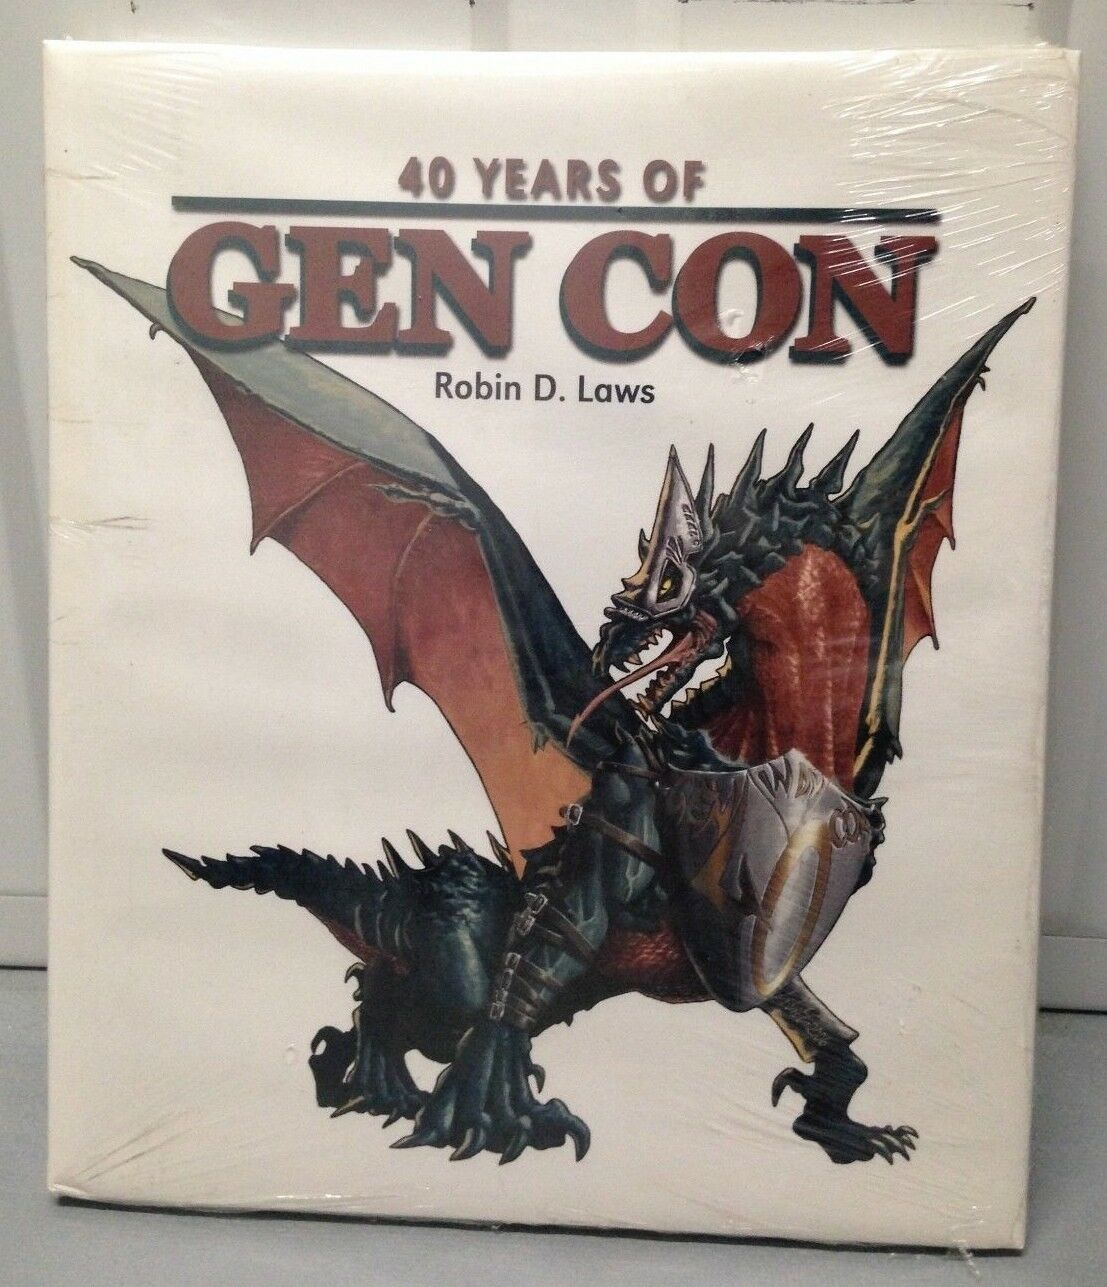 40 Years of Gen Con by Robin D Laws - Sealed